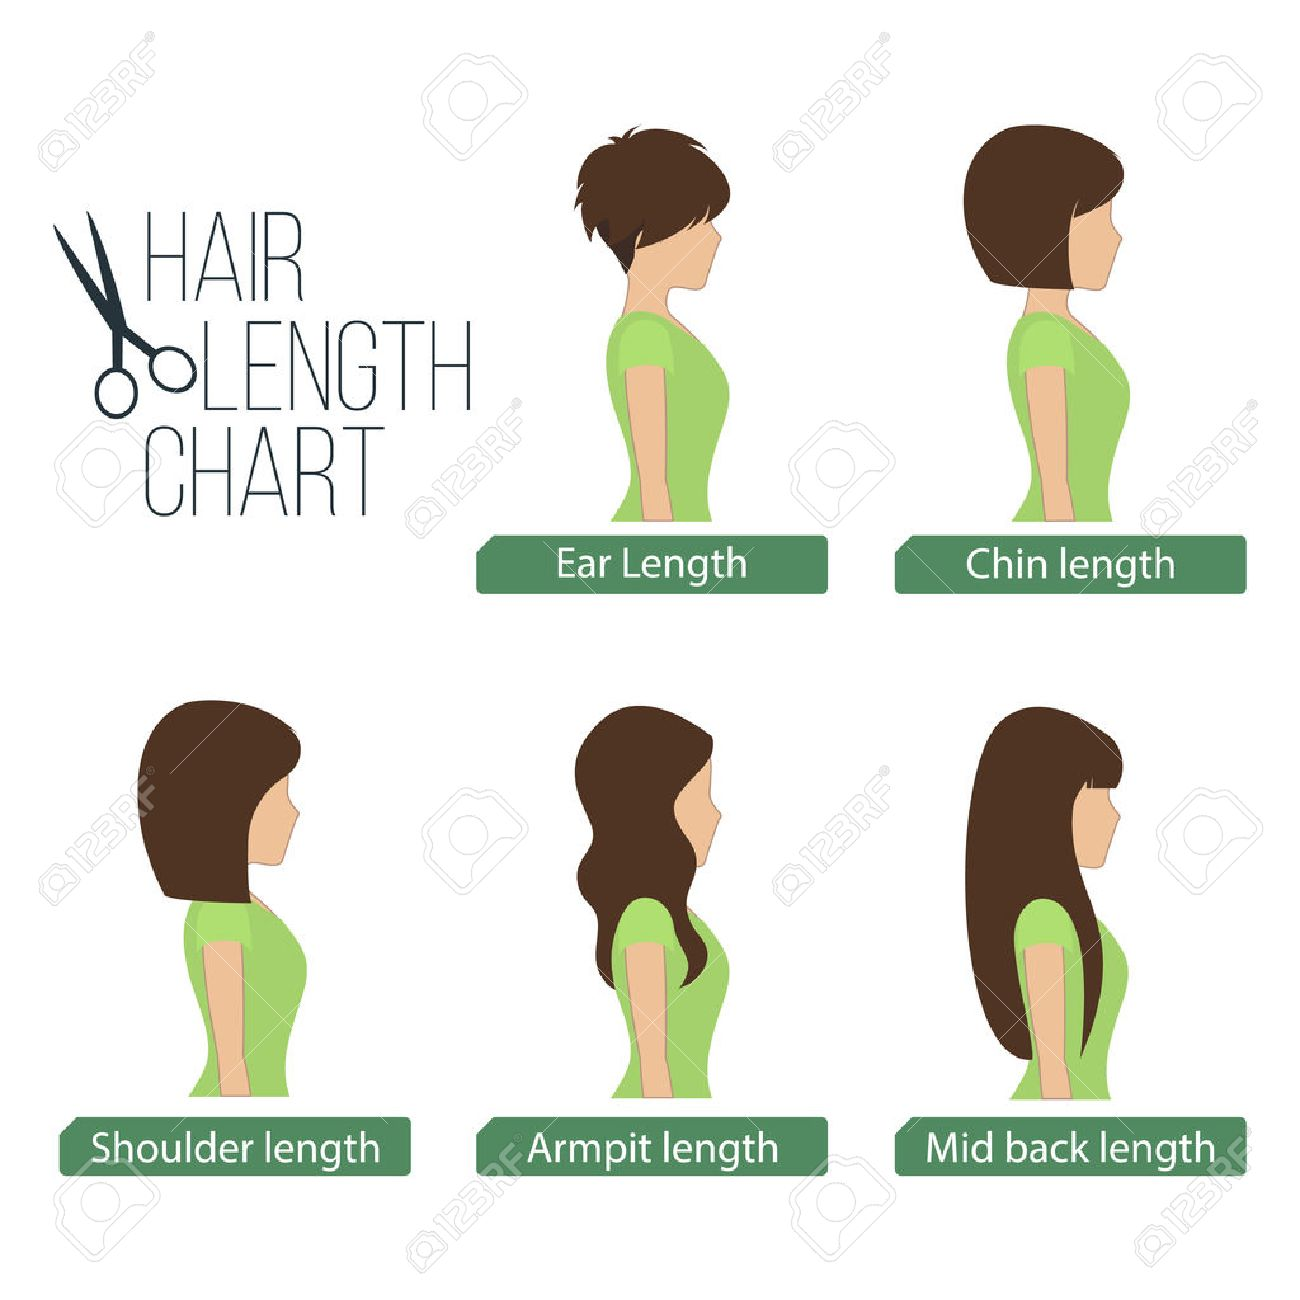 hair length chart side view, 5 different hair lengths. royalty